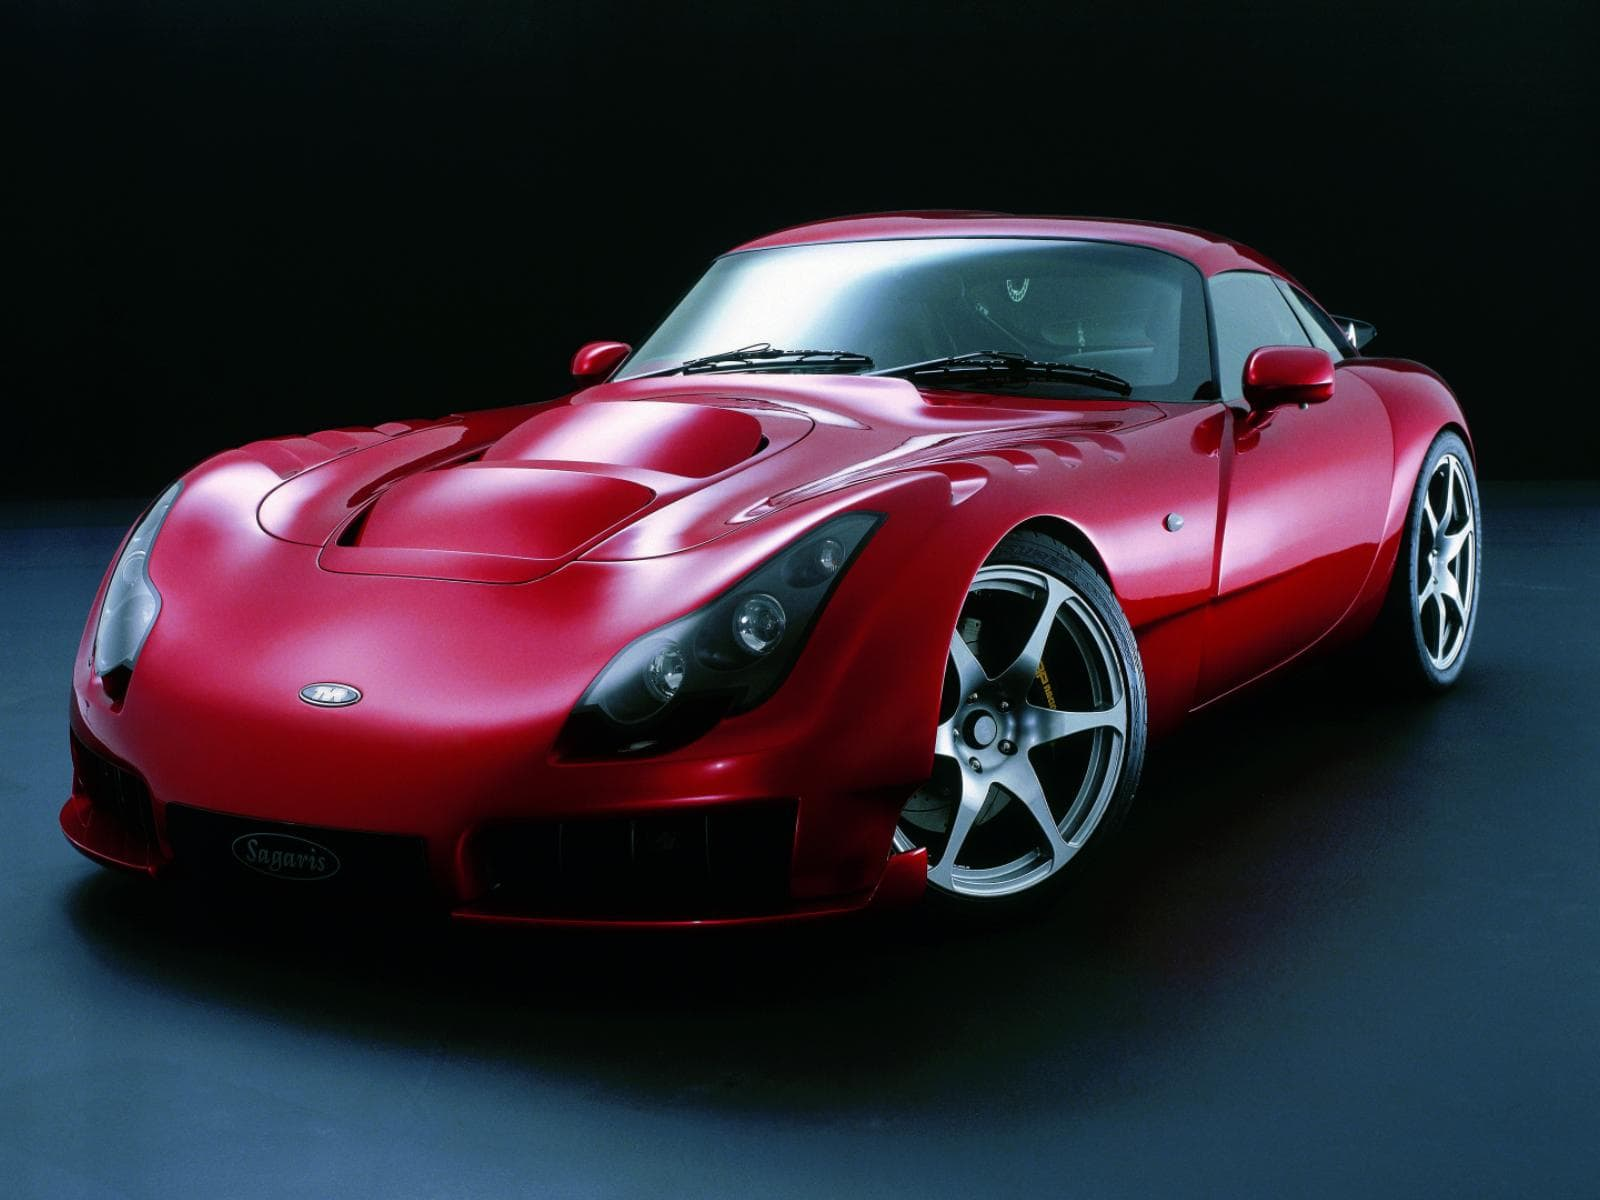 2005 TVR Sagaris Download